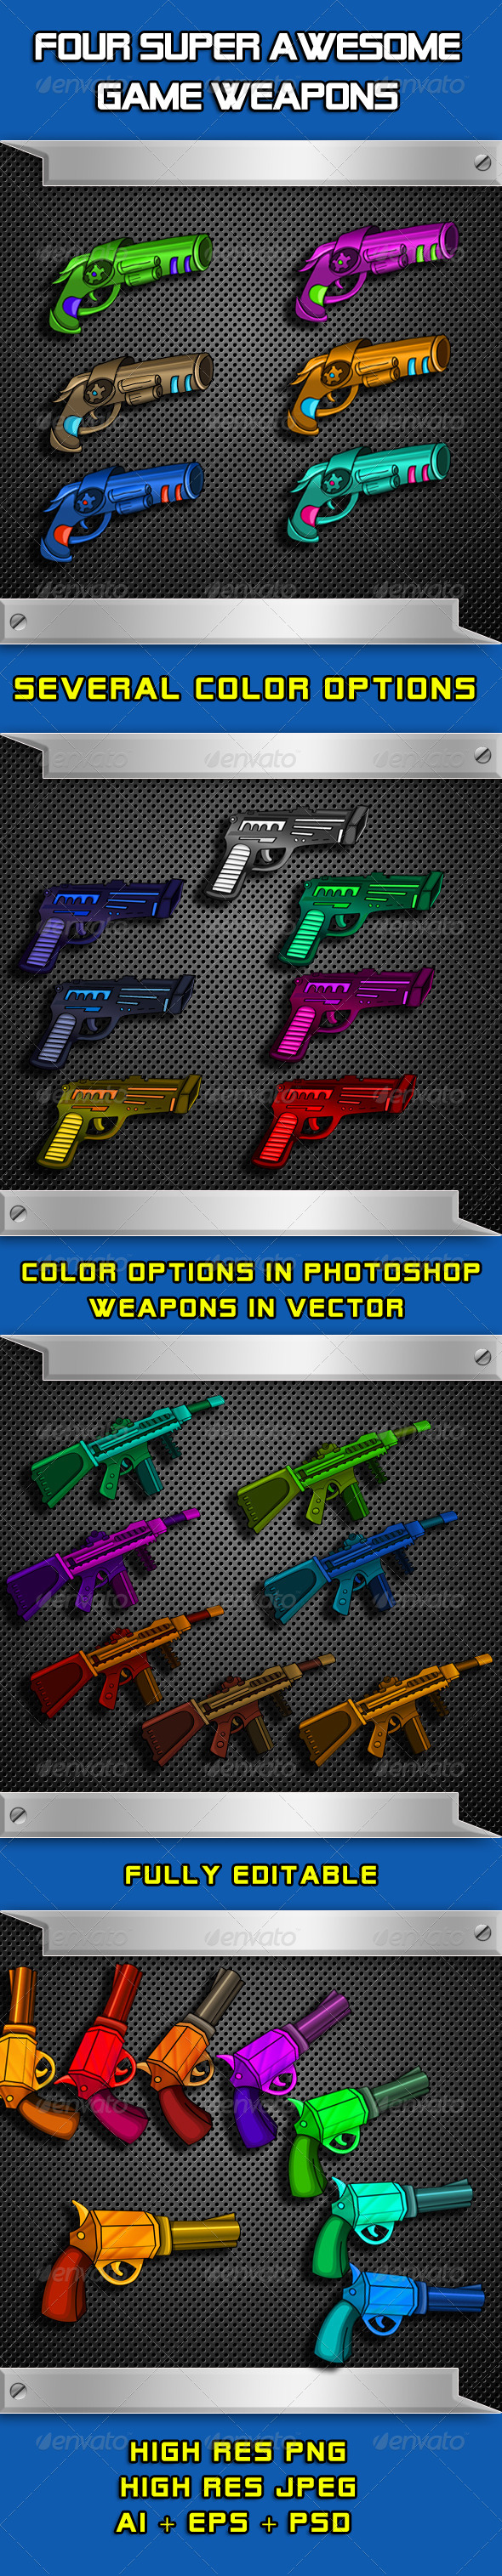 GraphicRiver Awesome Game Weapons 6234595